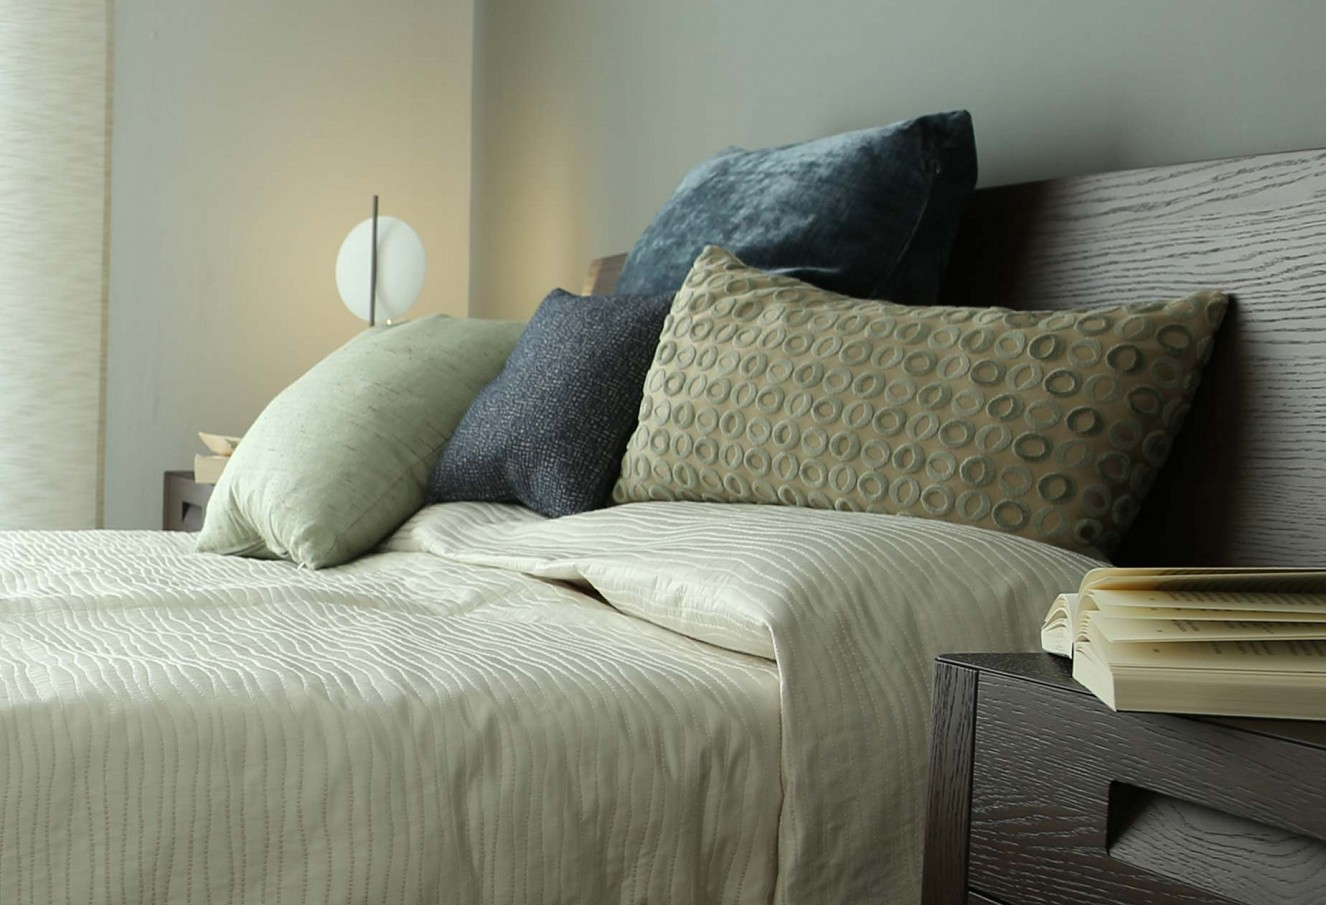 brillant interiors Interior Designer Berlin Mitte Tailored cushions from Zimmer + Rohde and Luiz